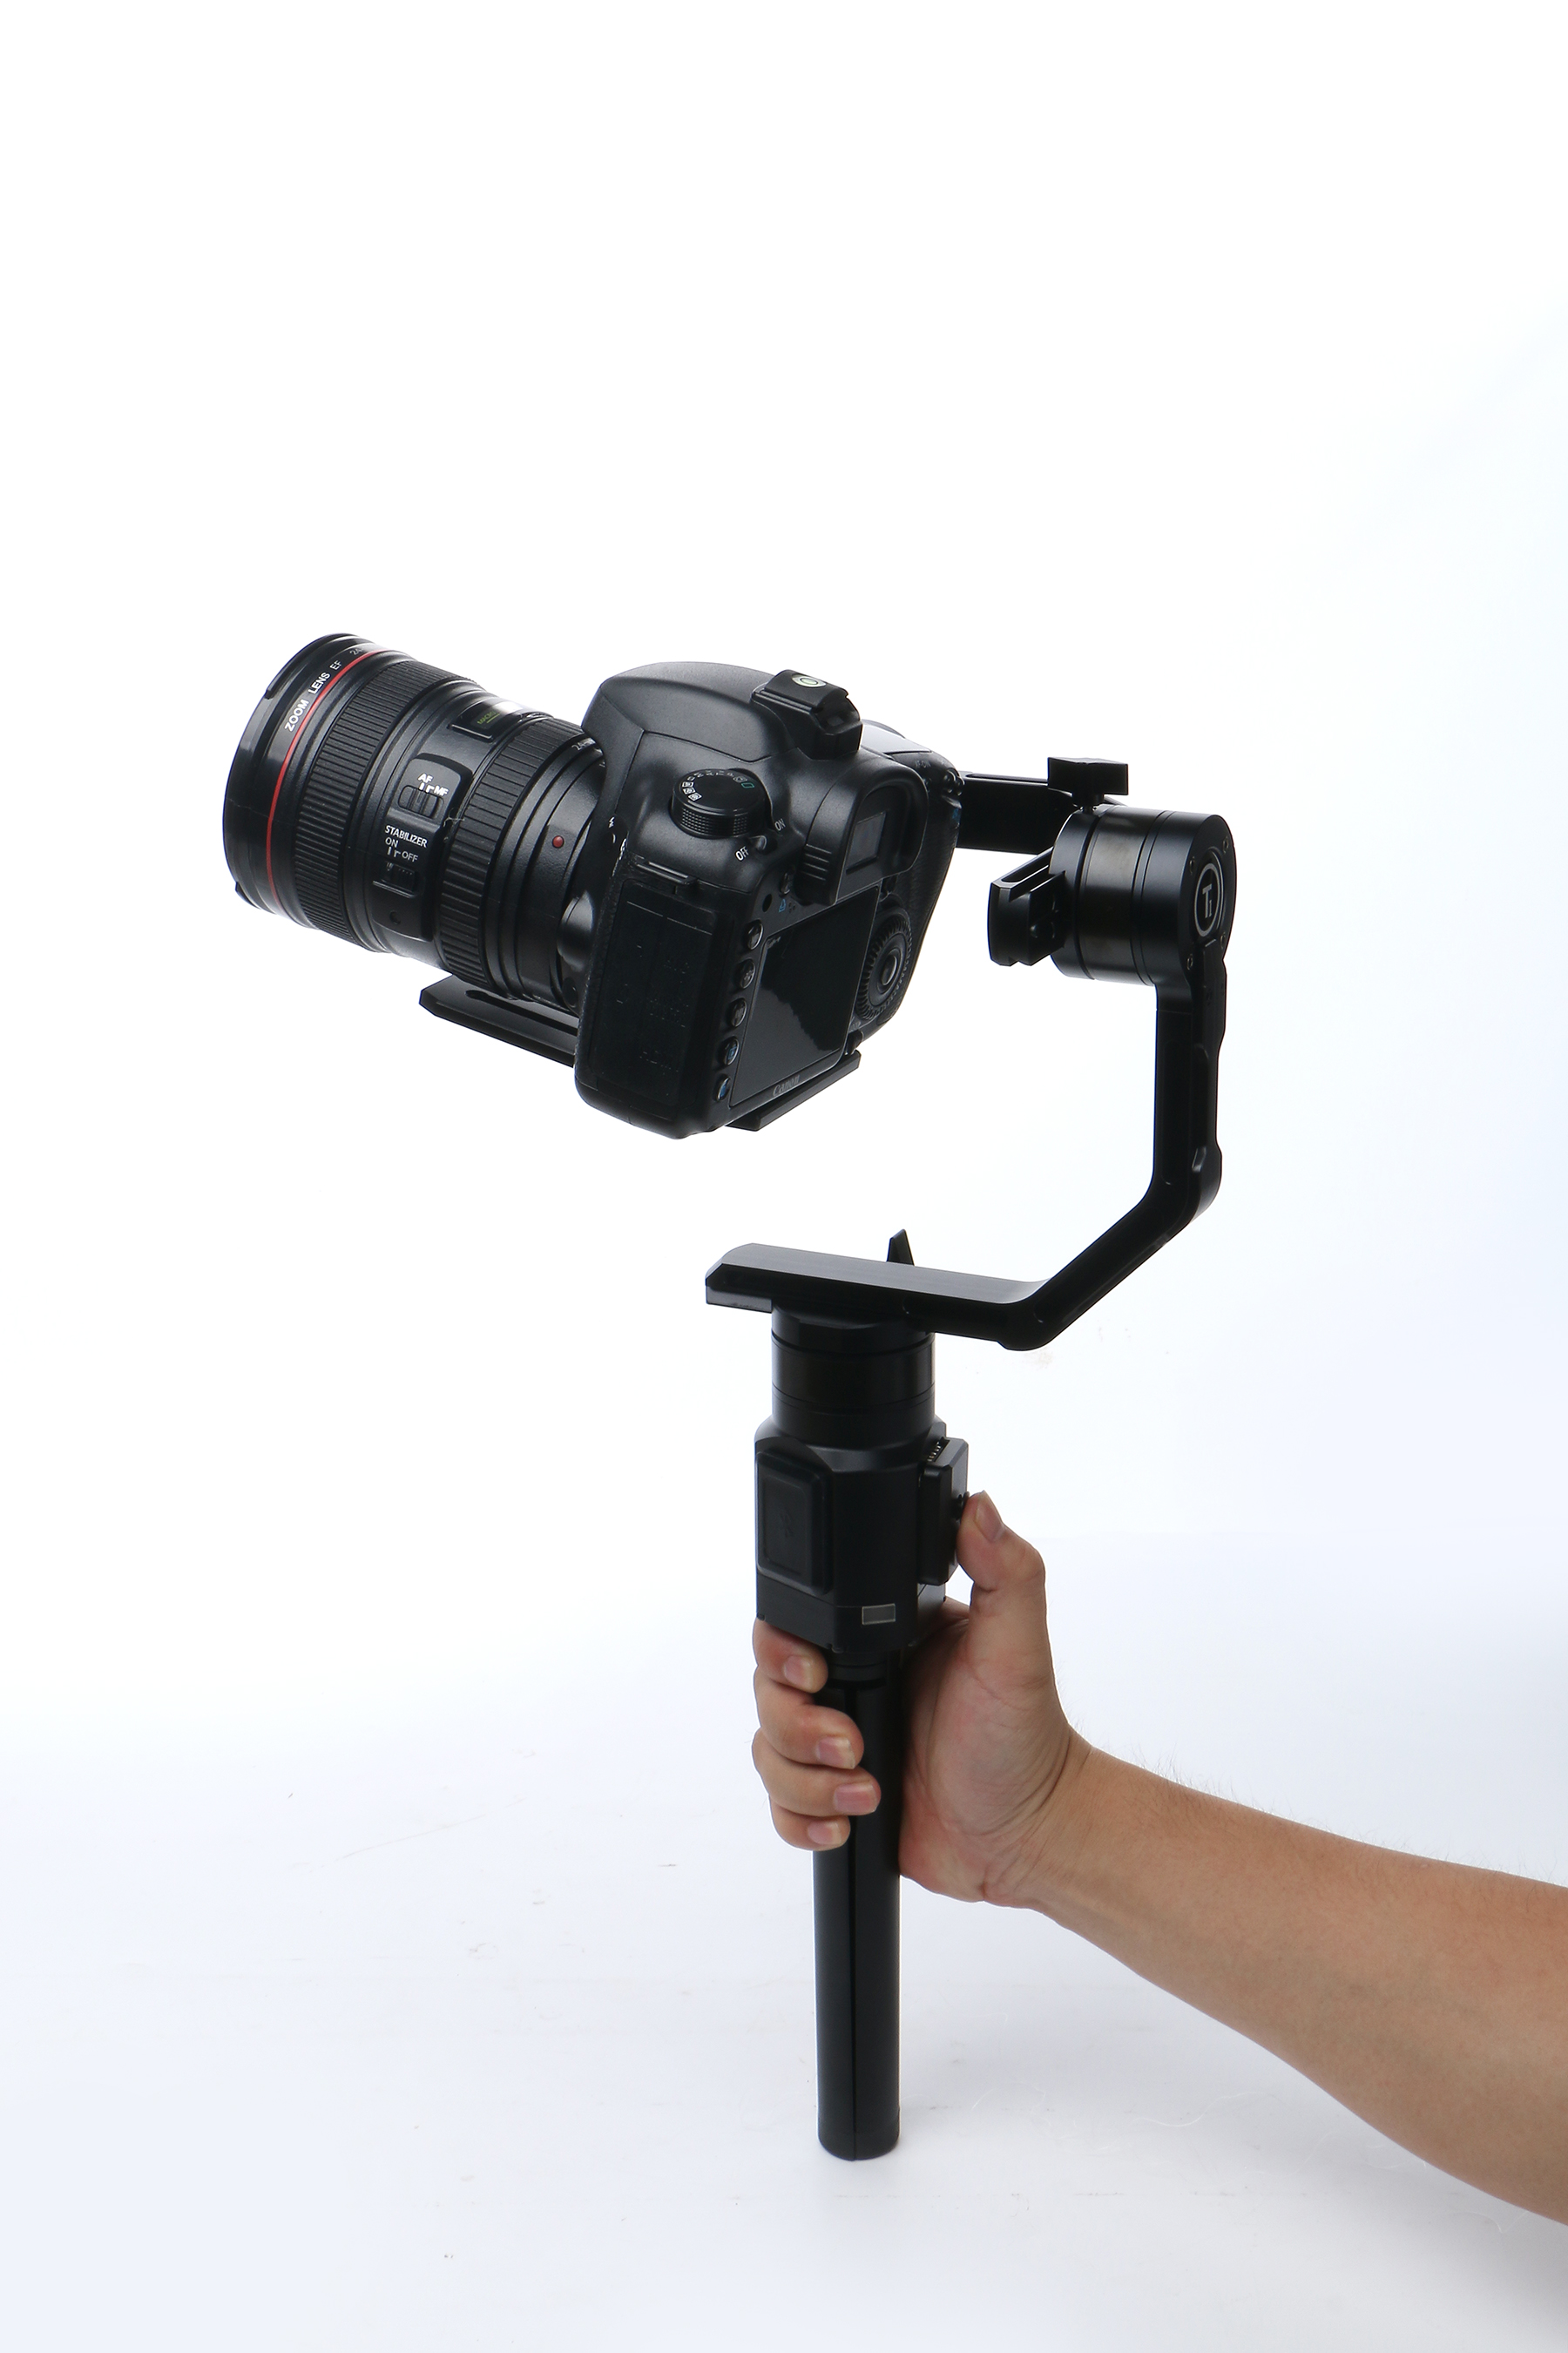 Ti 3-Axis Gimbal Handheld Stabilizer for small DSLR Cameras 50pc